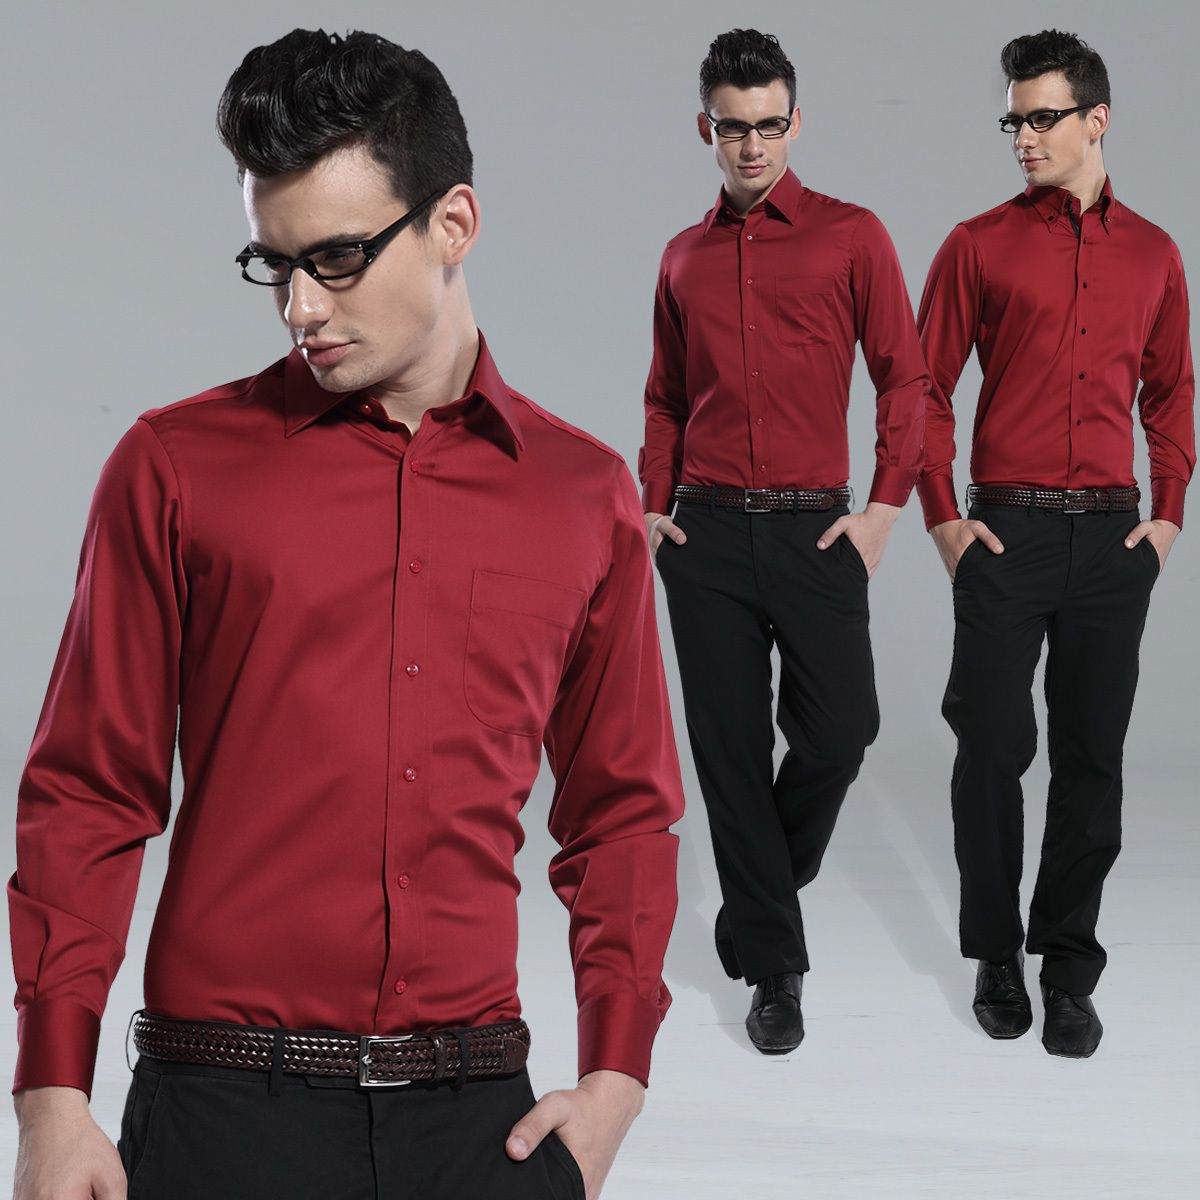 durable service price select for authentic Sweet! | Red shirt dress, Red shirt, Black dress shoes